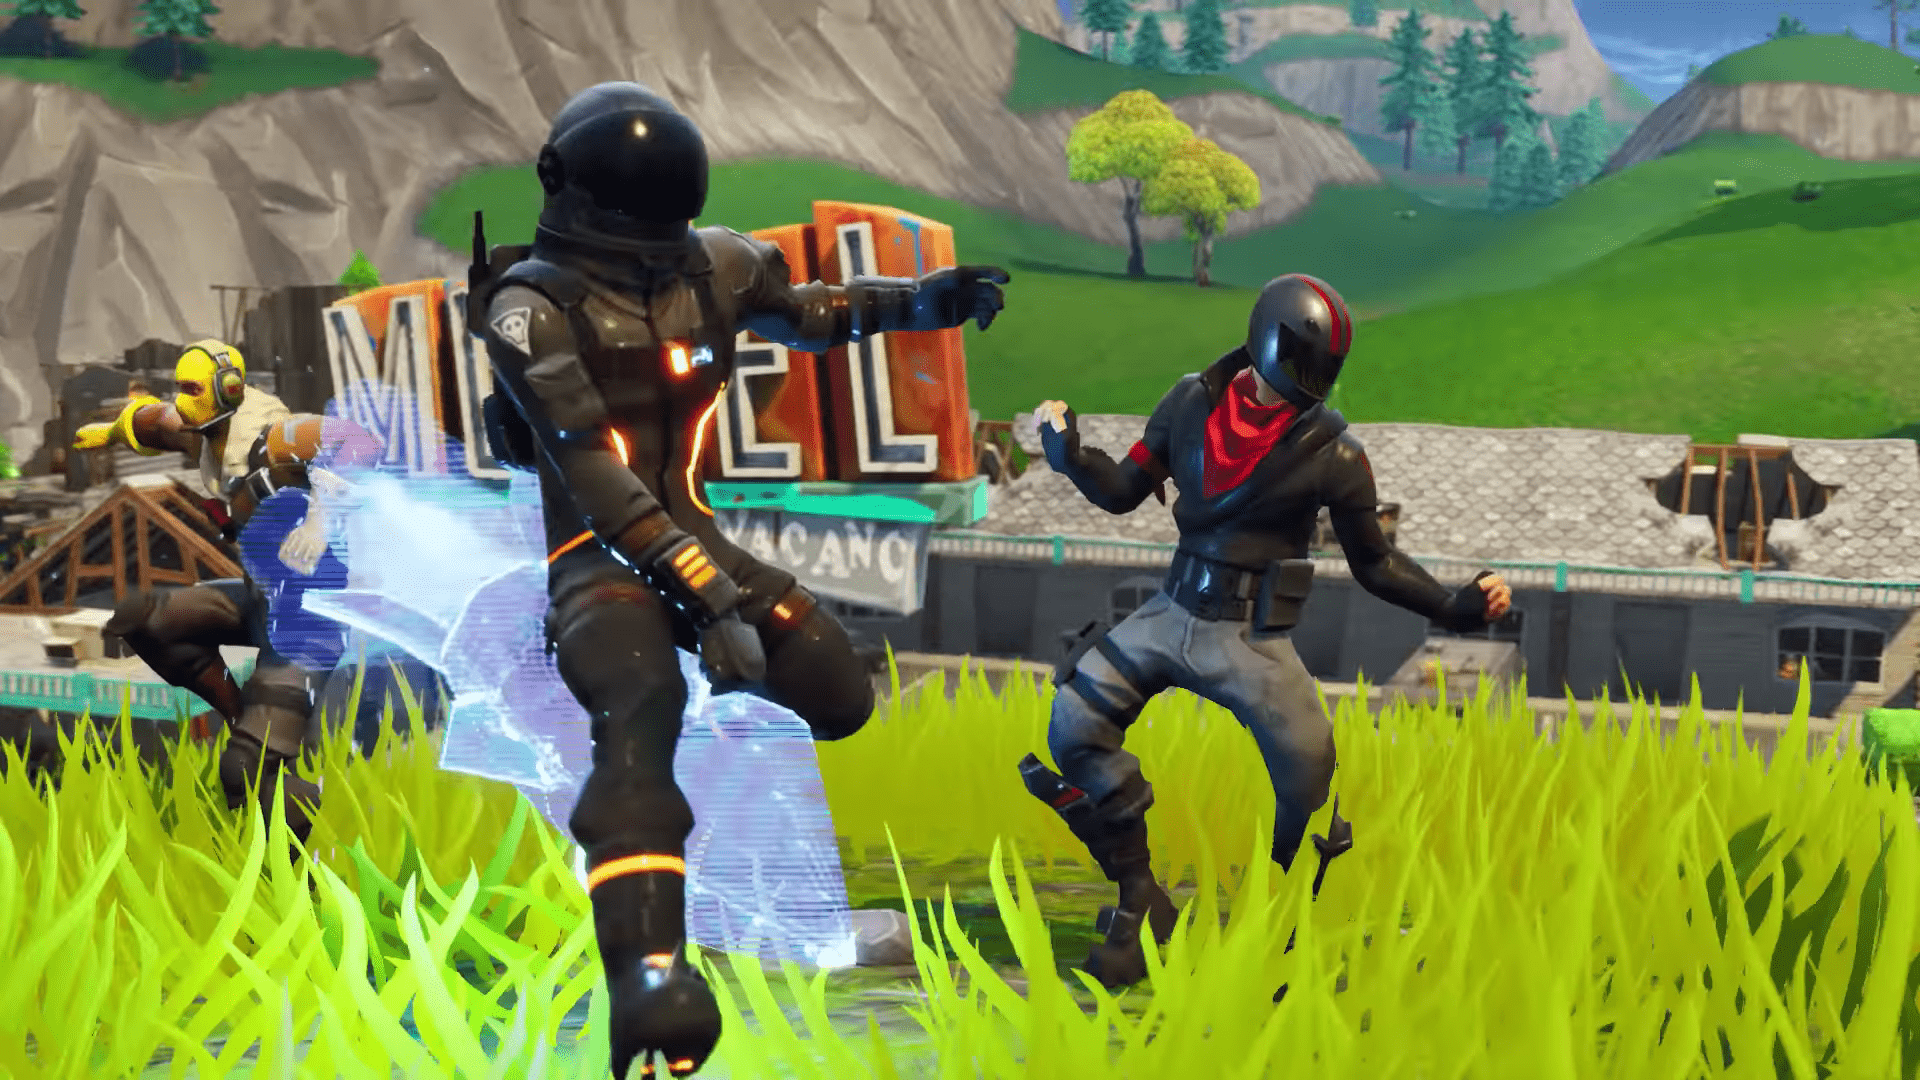 Professional Fortnite Player Revealed As Underage—Will Not Receive Prize Money From Previous Tournaments